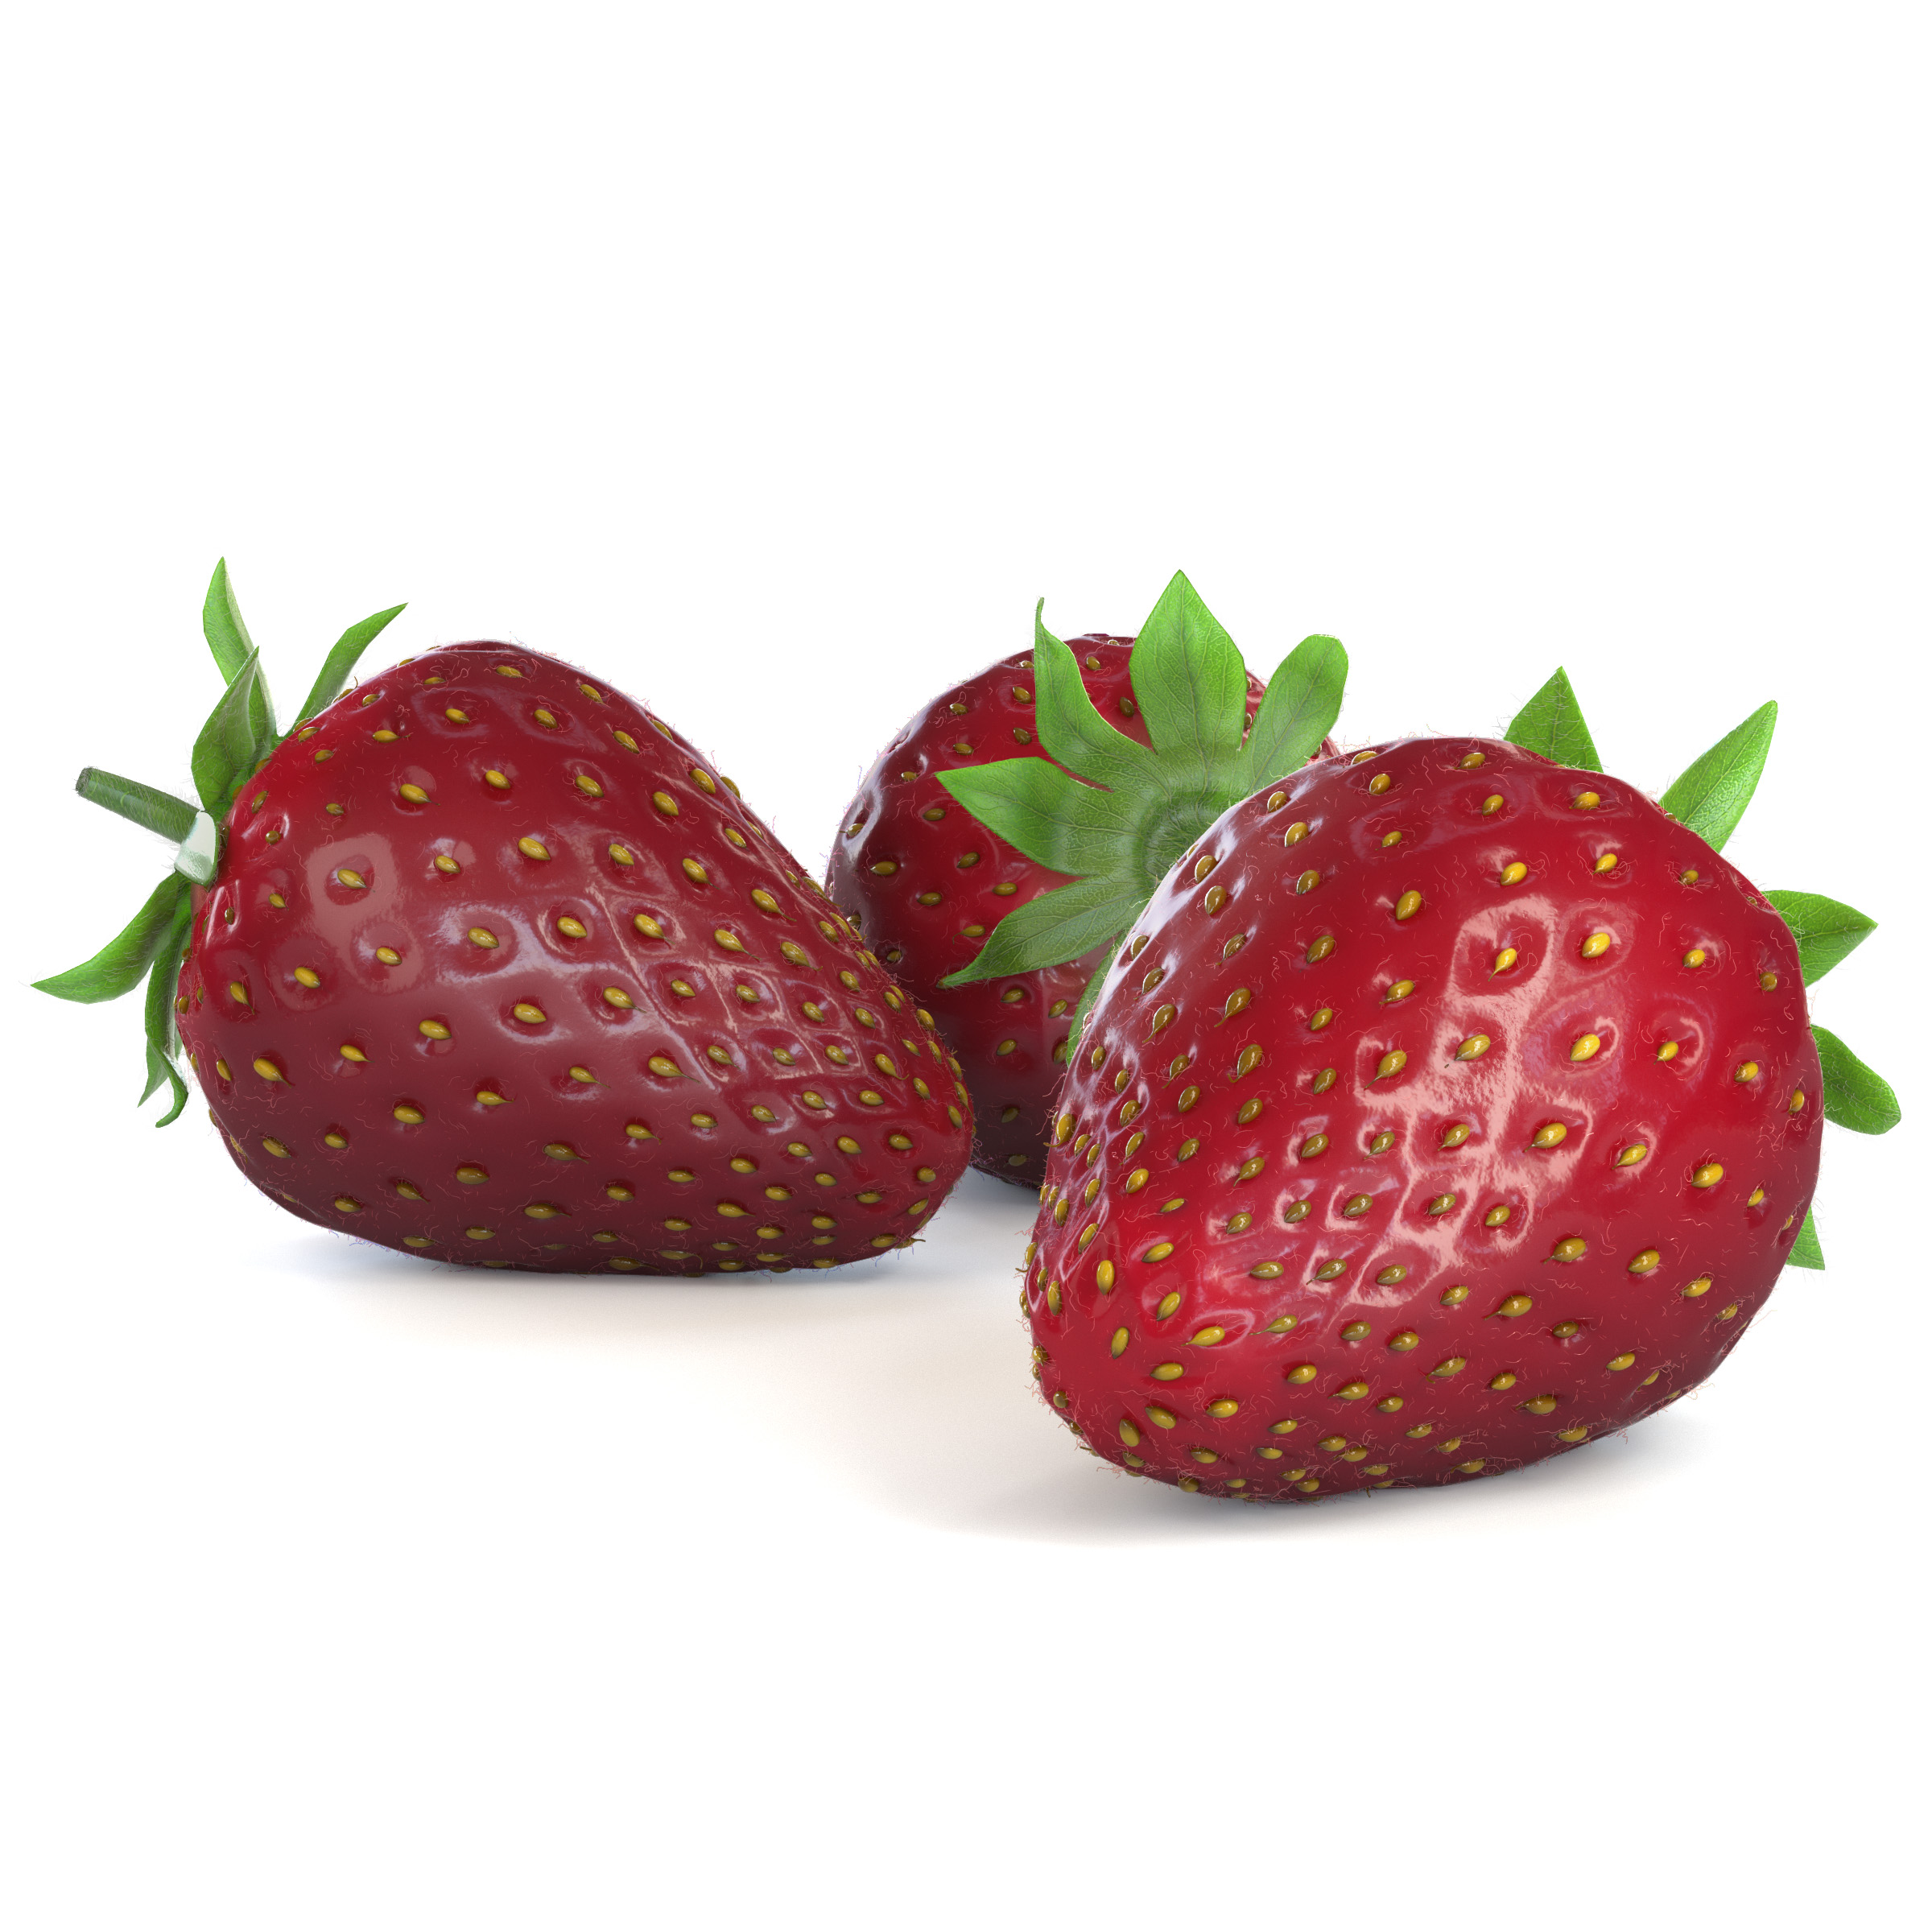 Strawberries_1.1.jpg